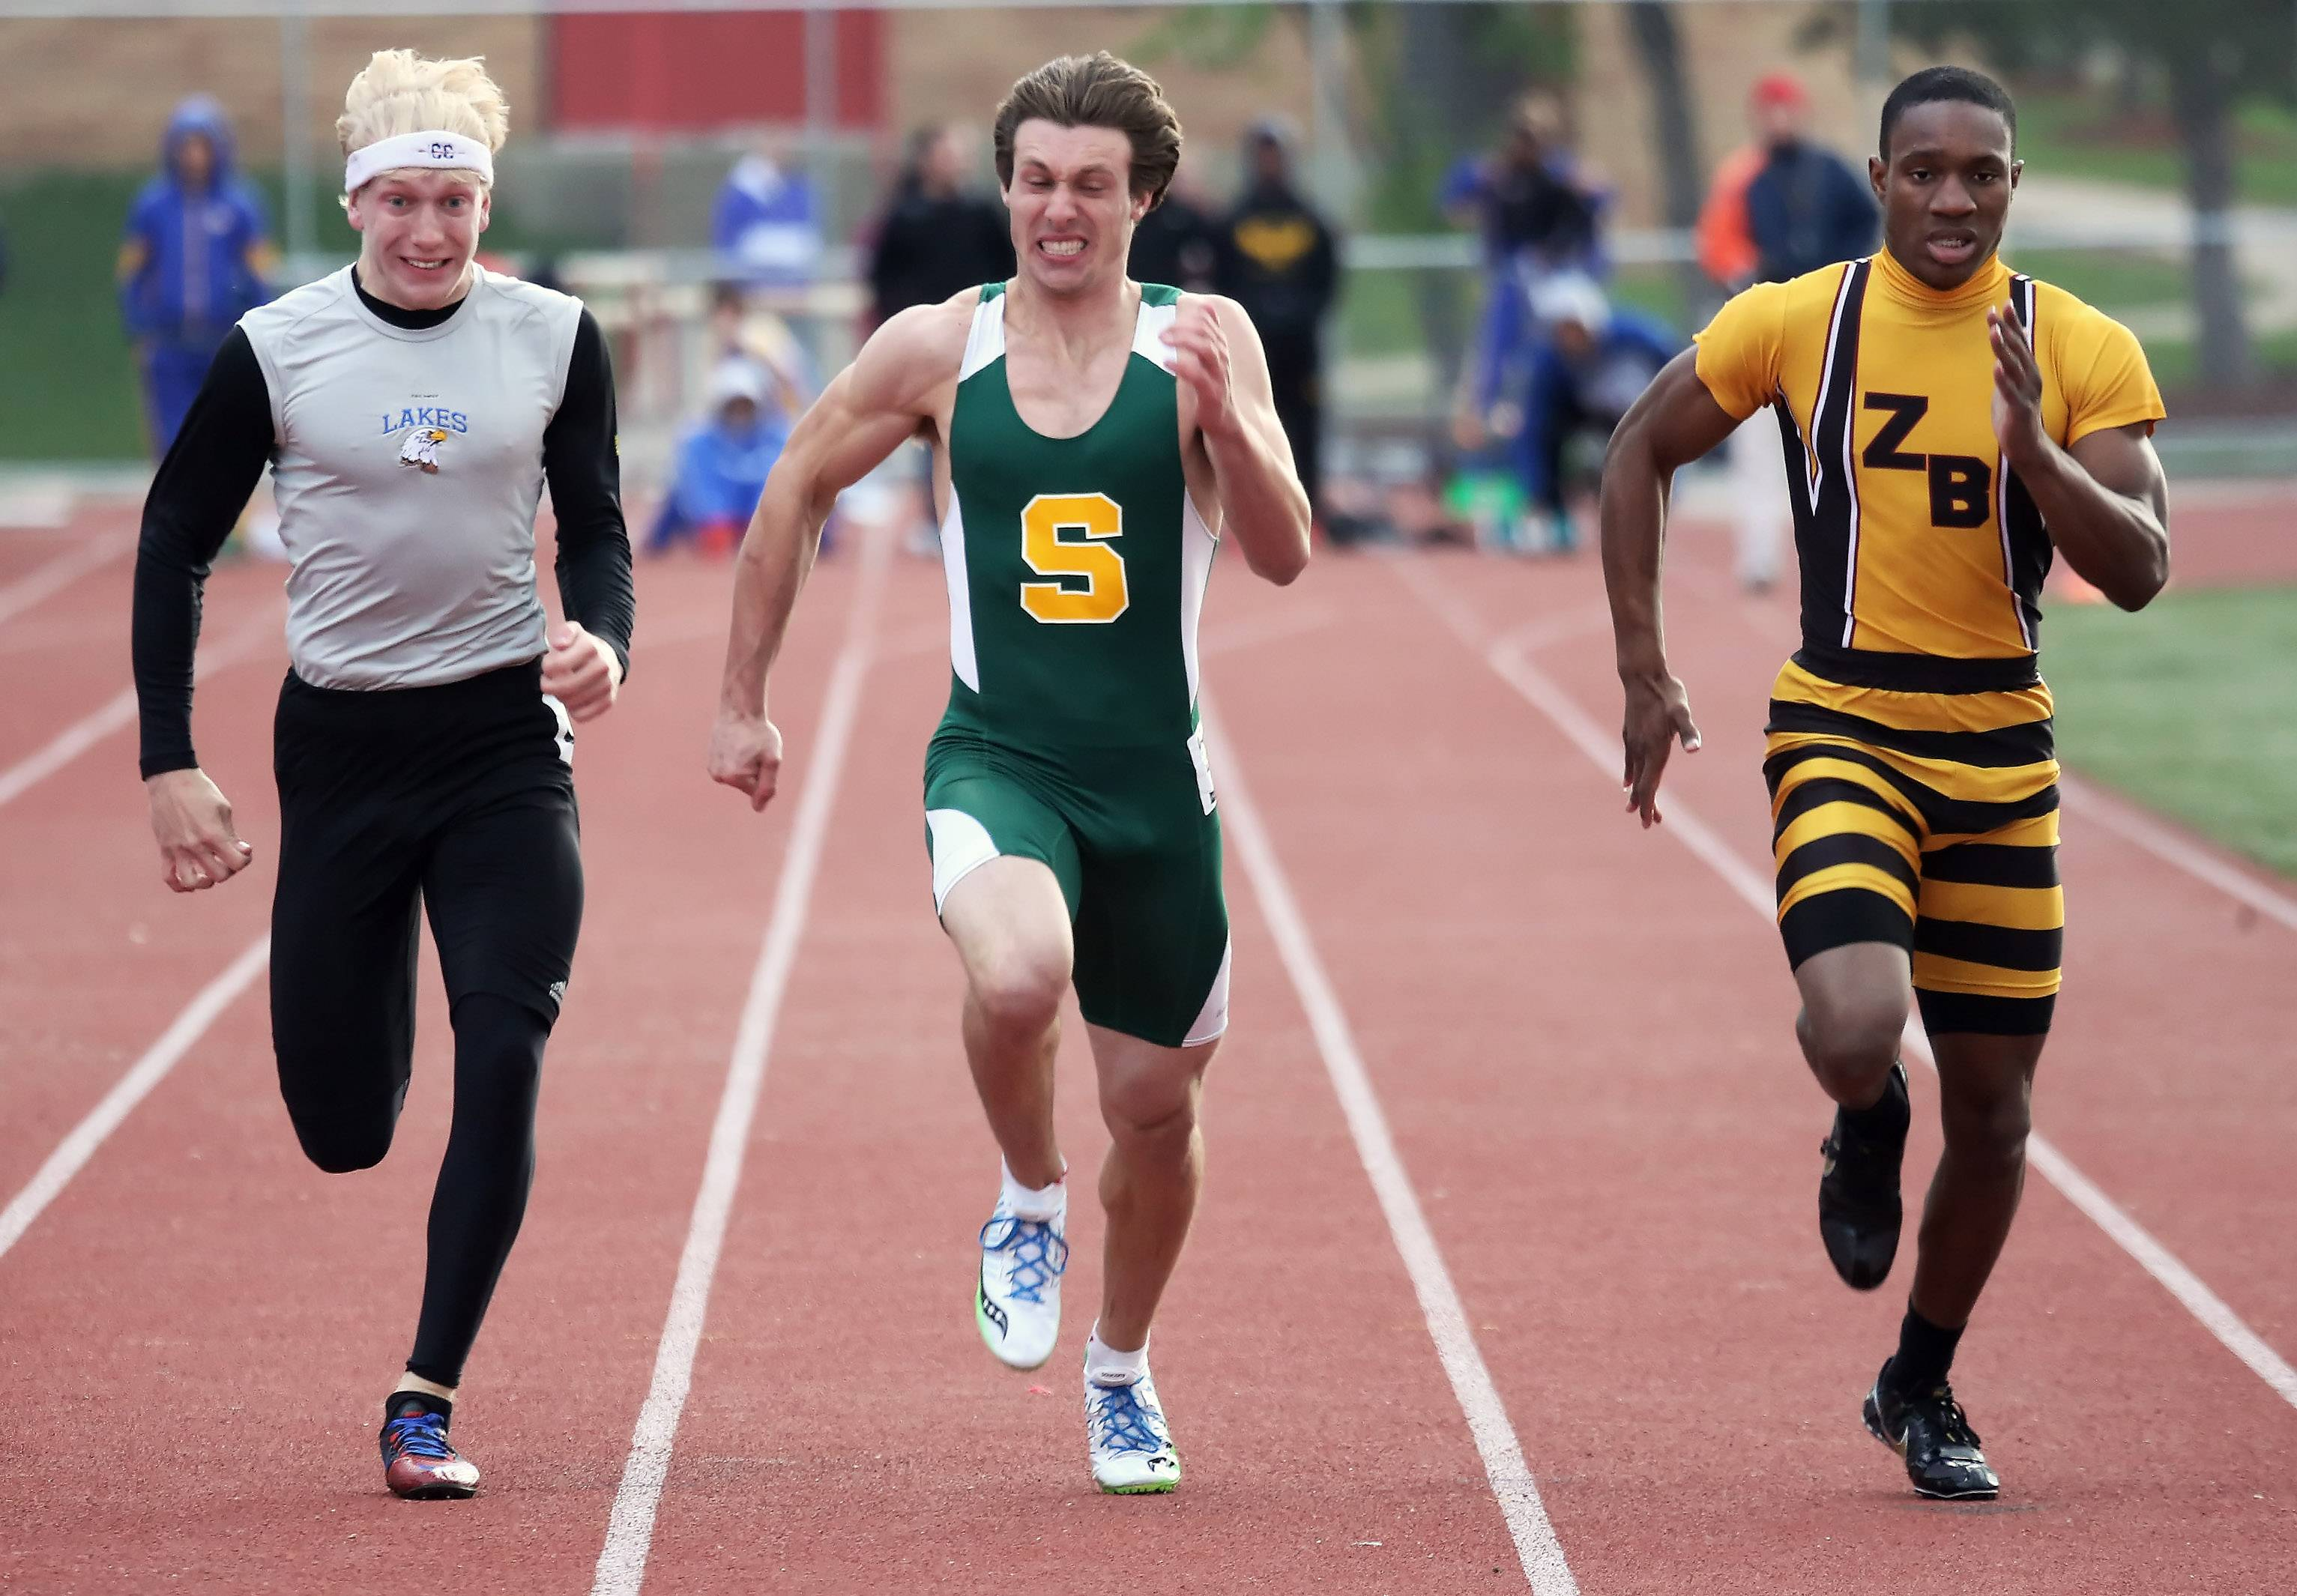 Lakes' Corey Hertz, Stevenson's Tim Vestuto and Zio-Benton's Jon Roberts are neck and neck in the 100-meter dash during the North Suburban Conference meet Thursday at Mundelein.